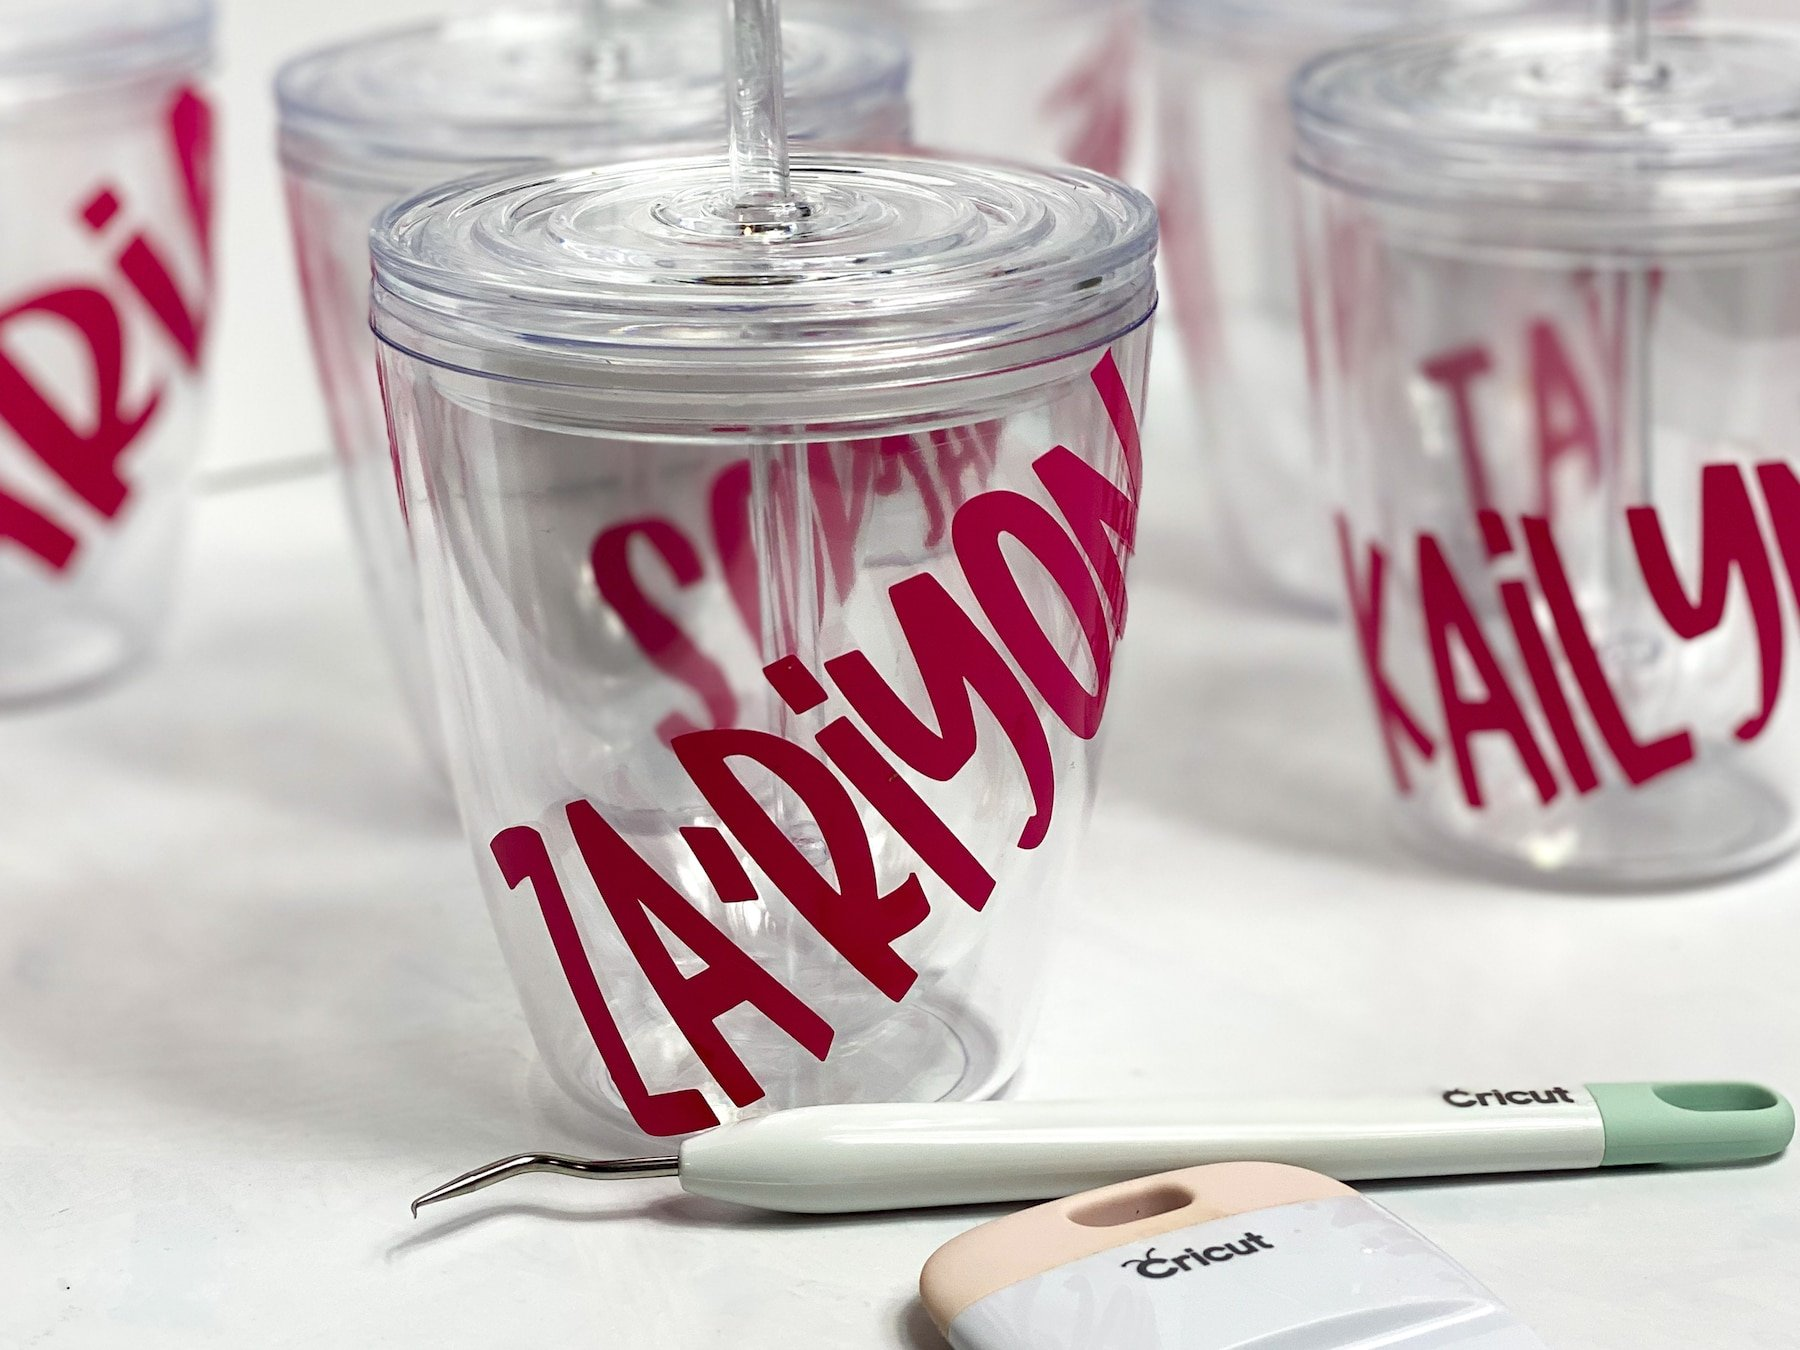 Clear Cricut cups with pink names, with a weeding tool and scraper in front